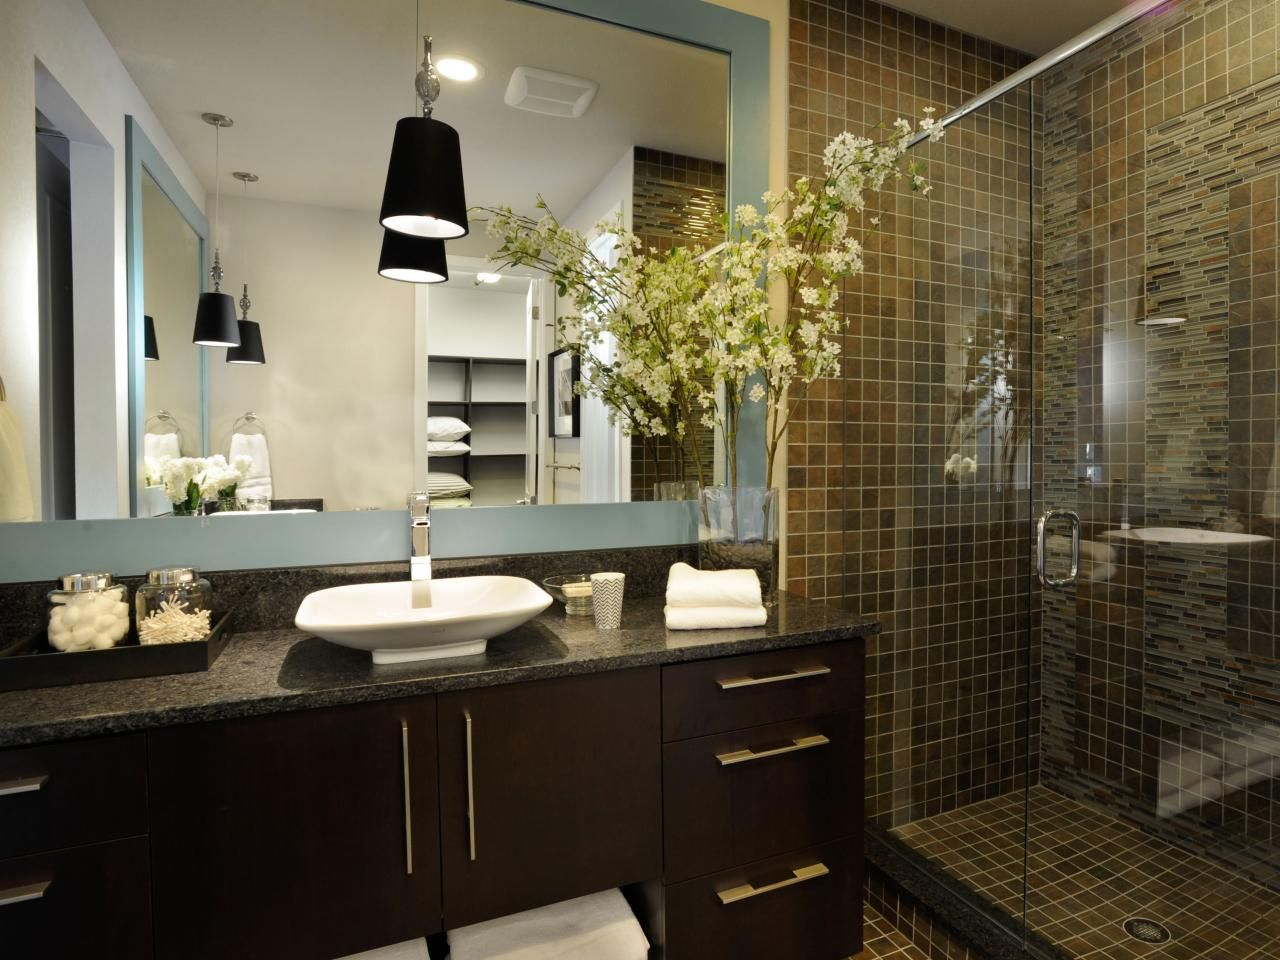 Images Of Modern Bathrooms Colonial Bathrooms Pictures Ideas & Tips From  Modern Shower